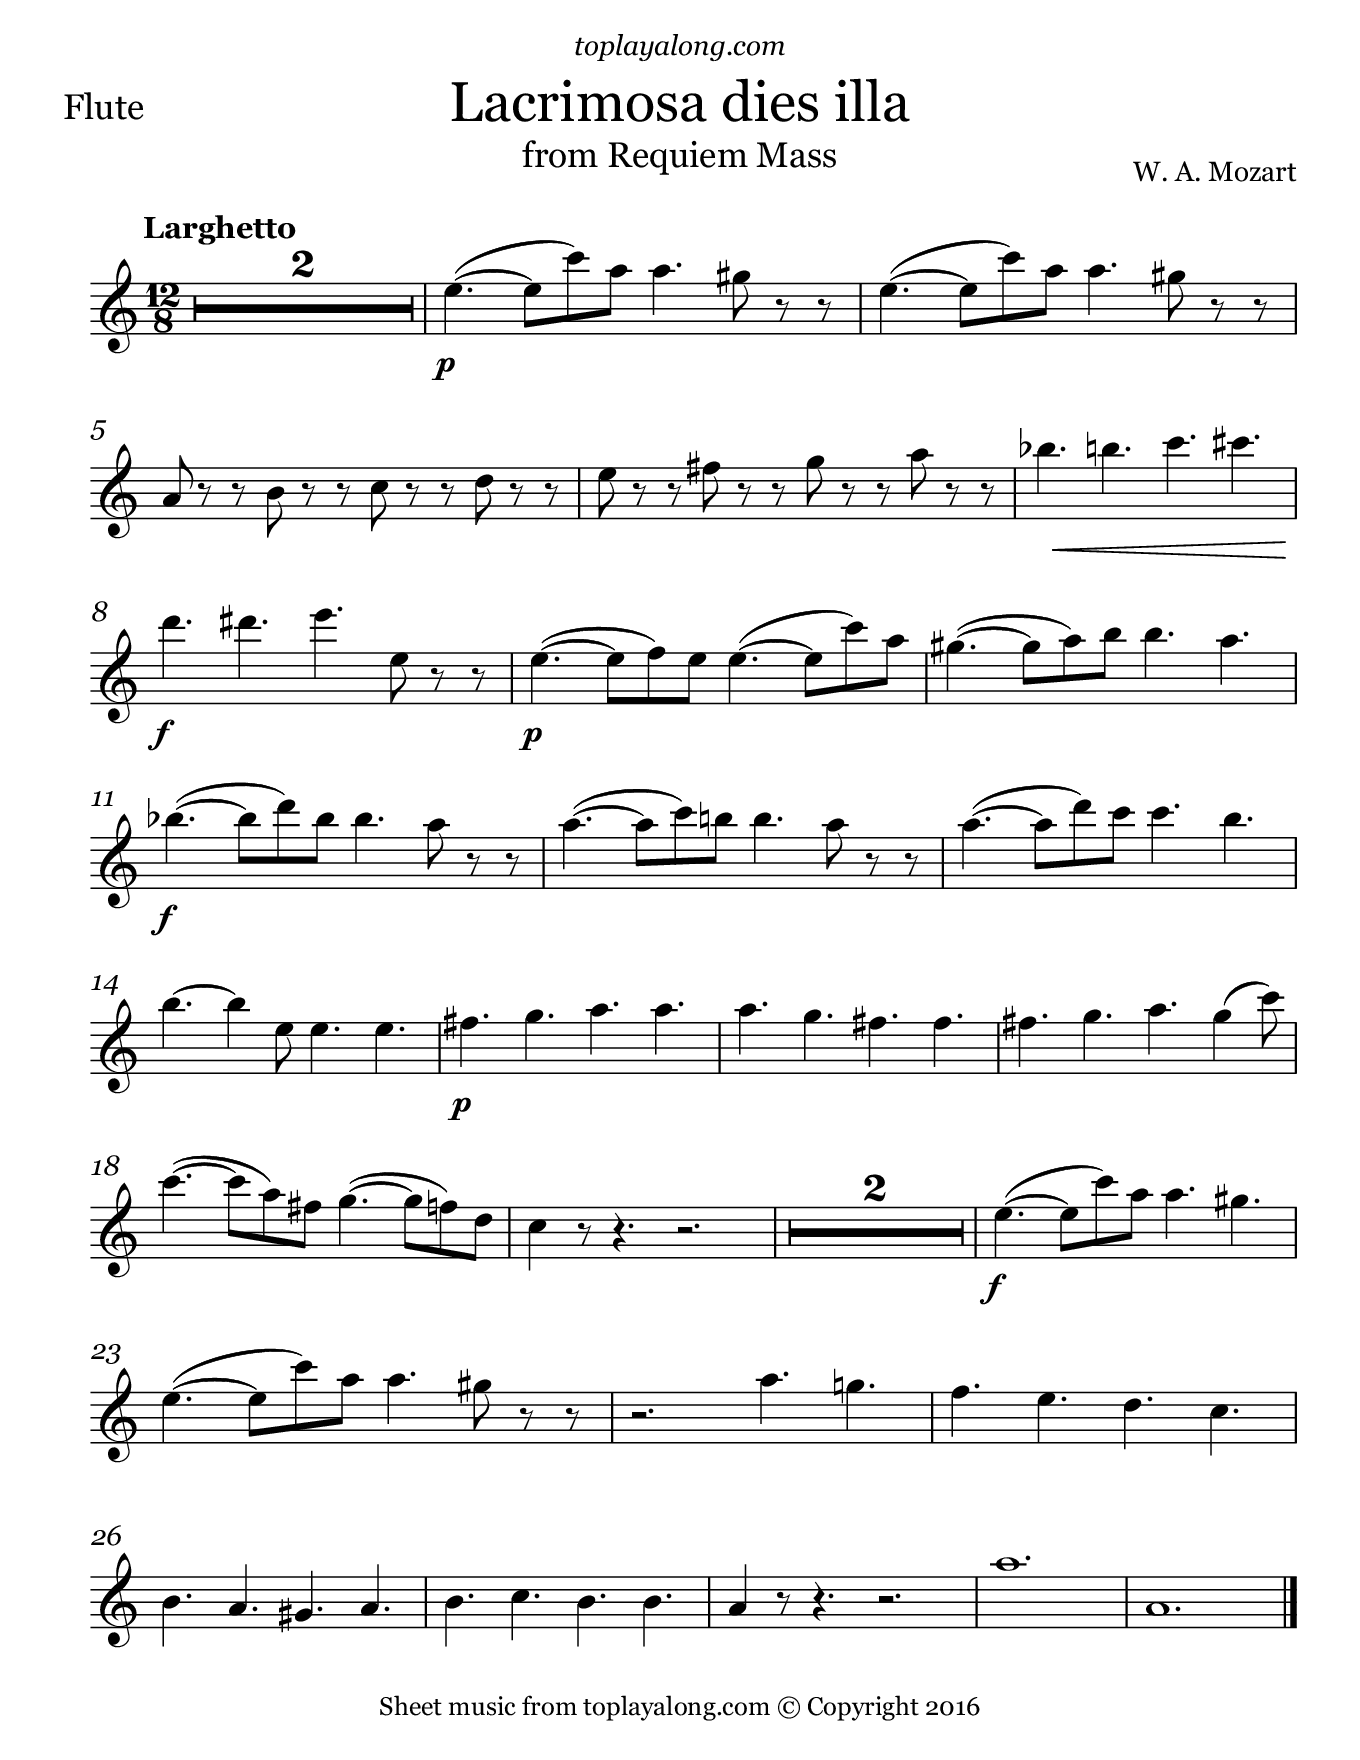 photo relating to Printable Flute Sheet Music identify Lacrimosa in opposition to Requiem M